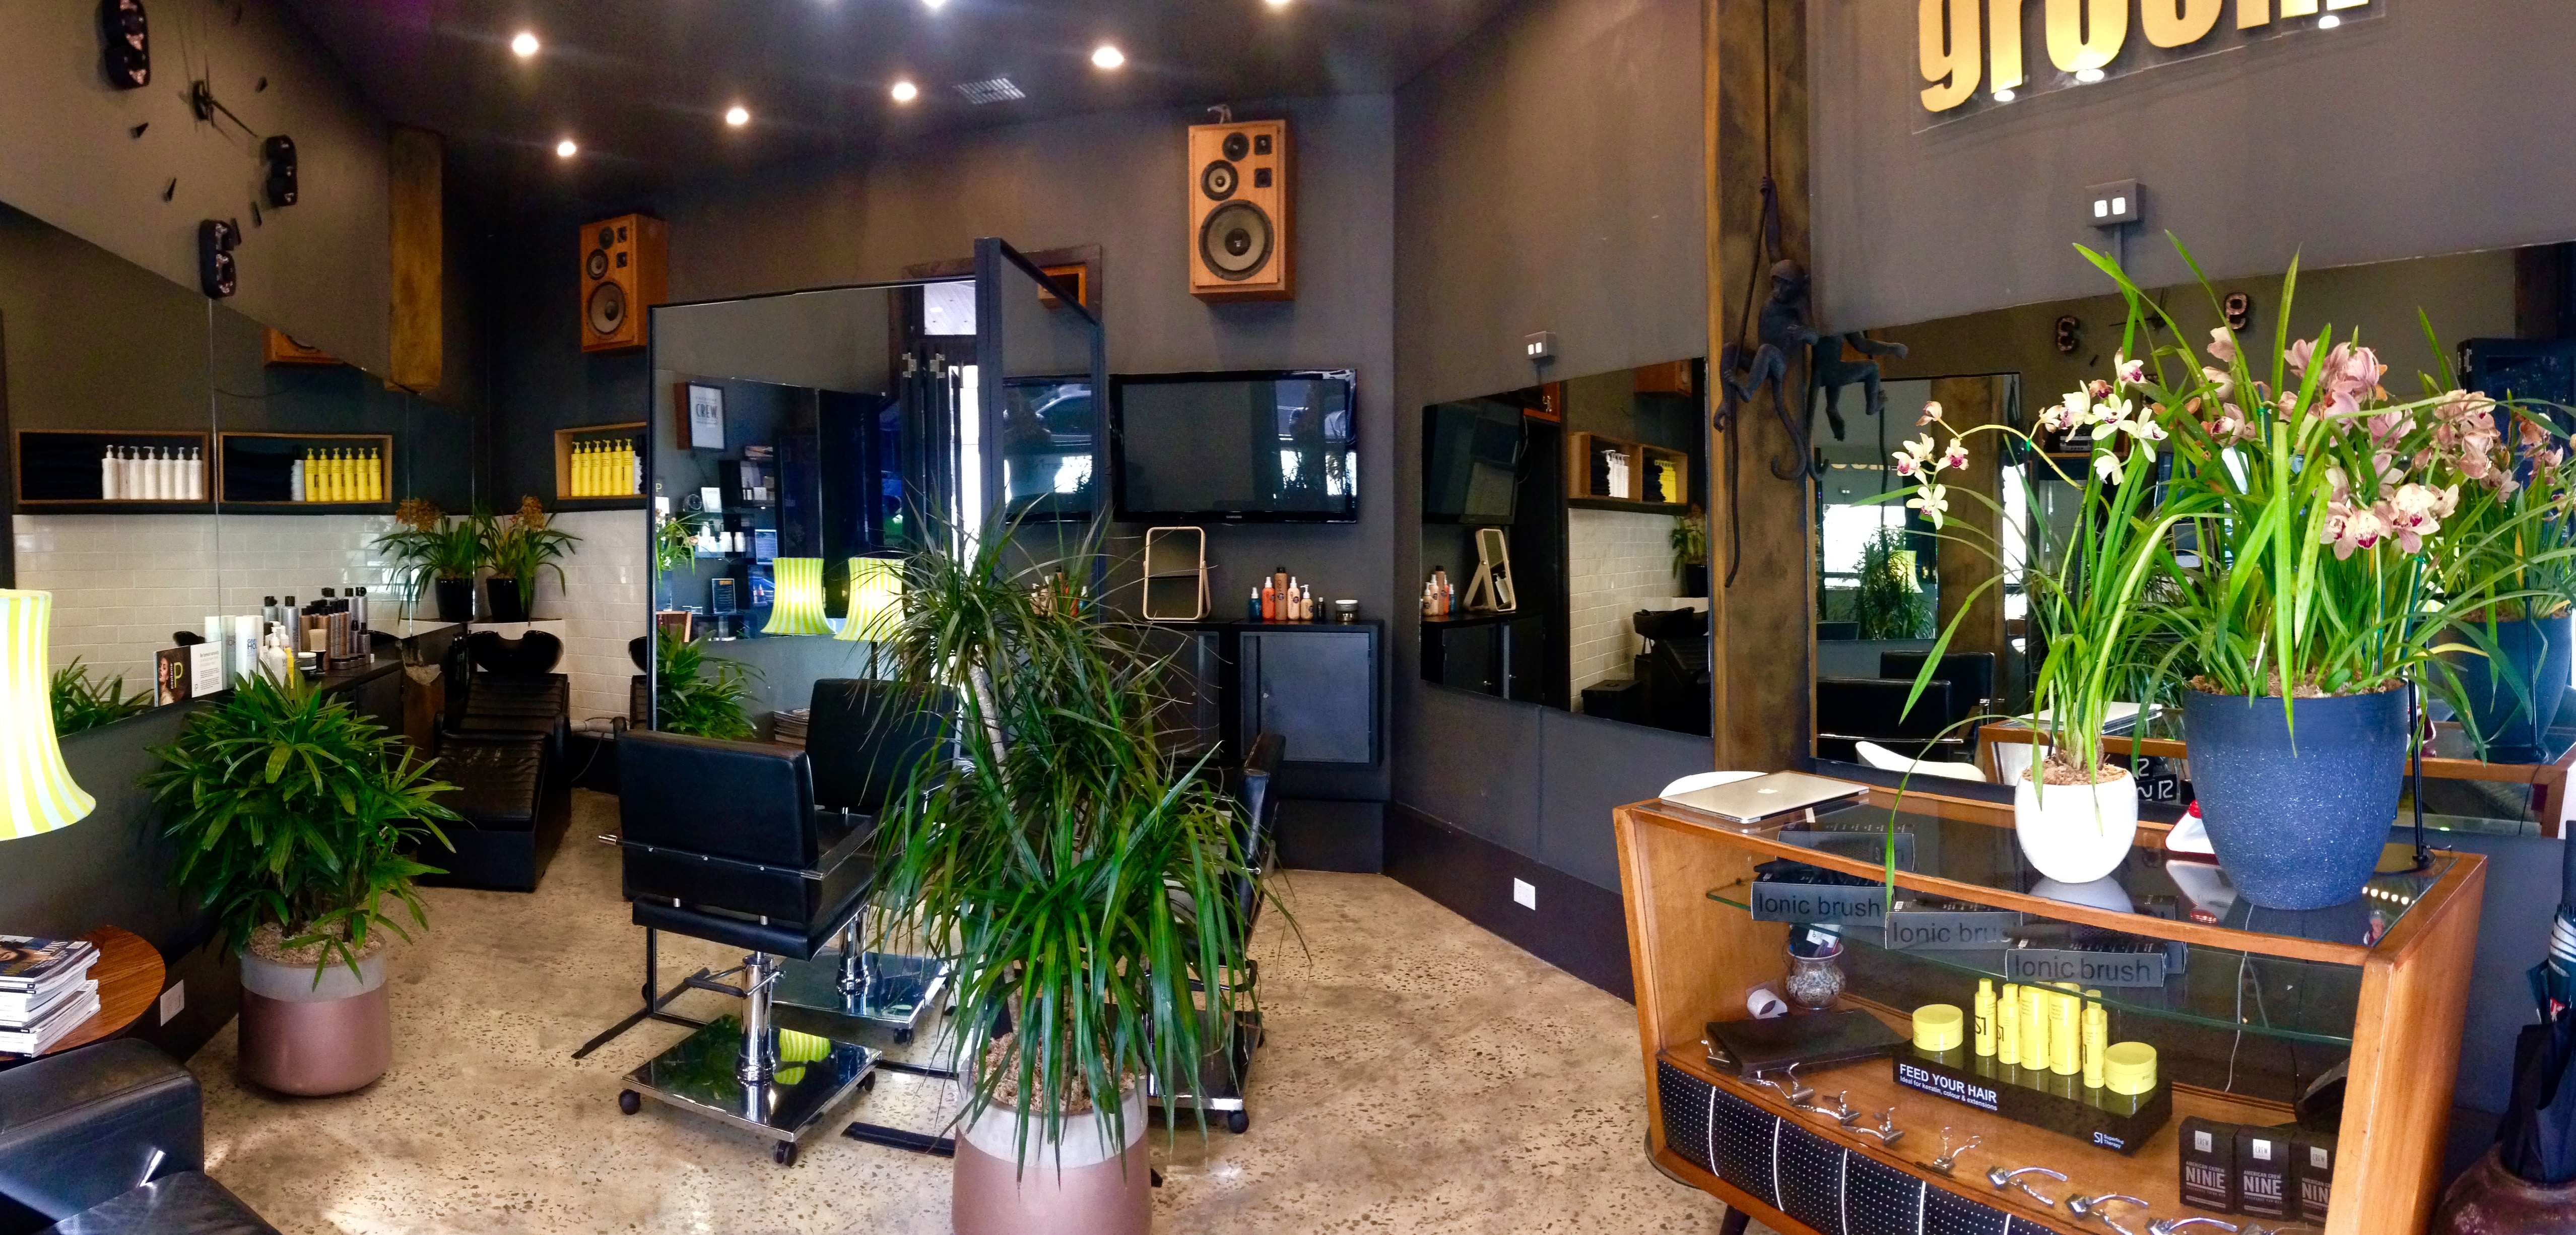 Wide angle view of Salon